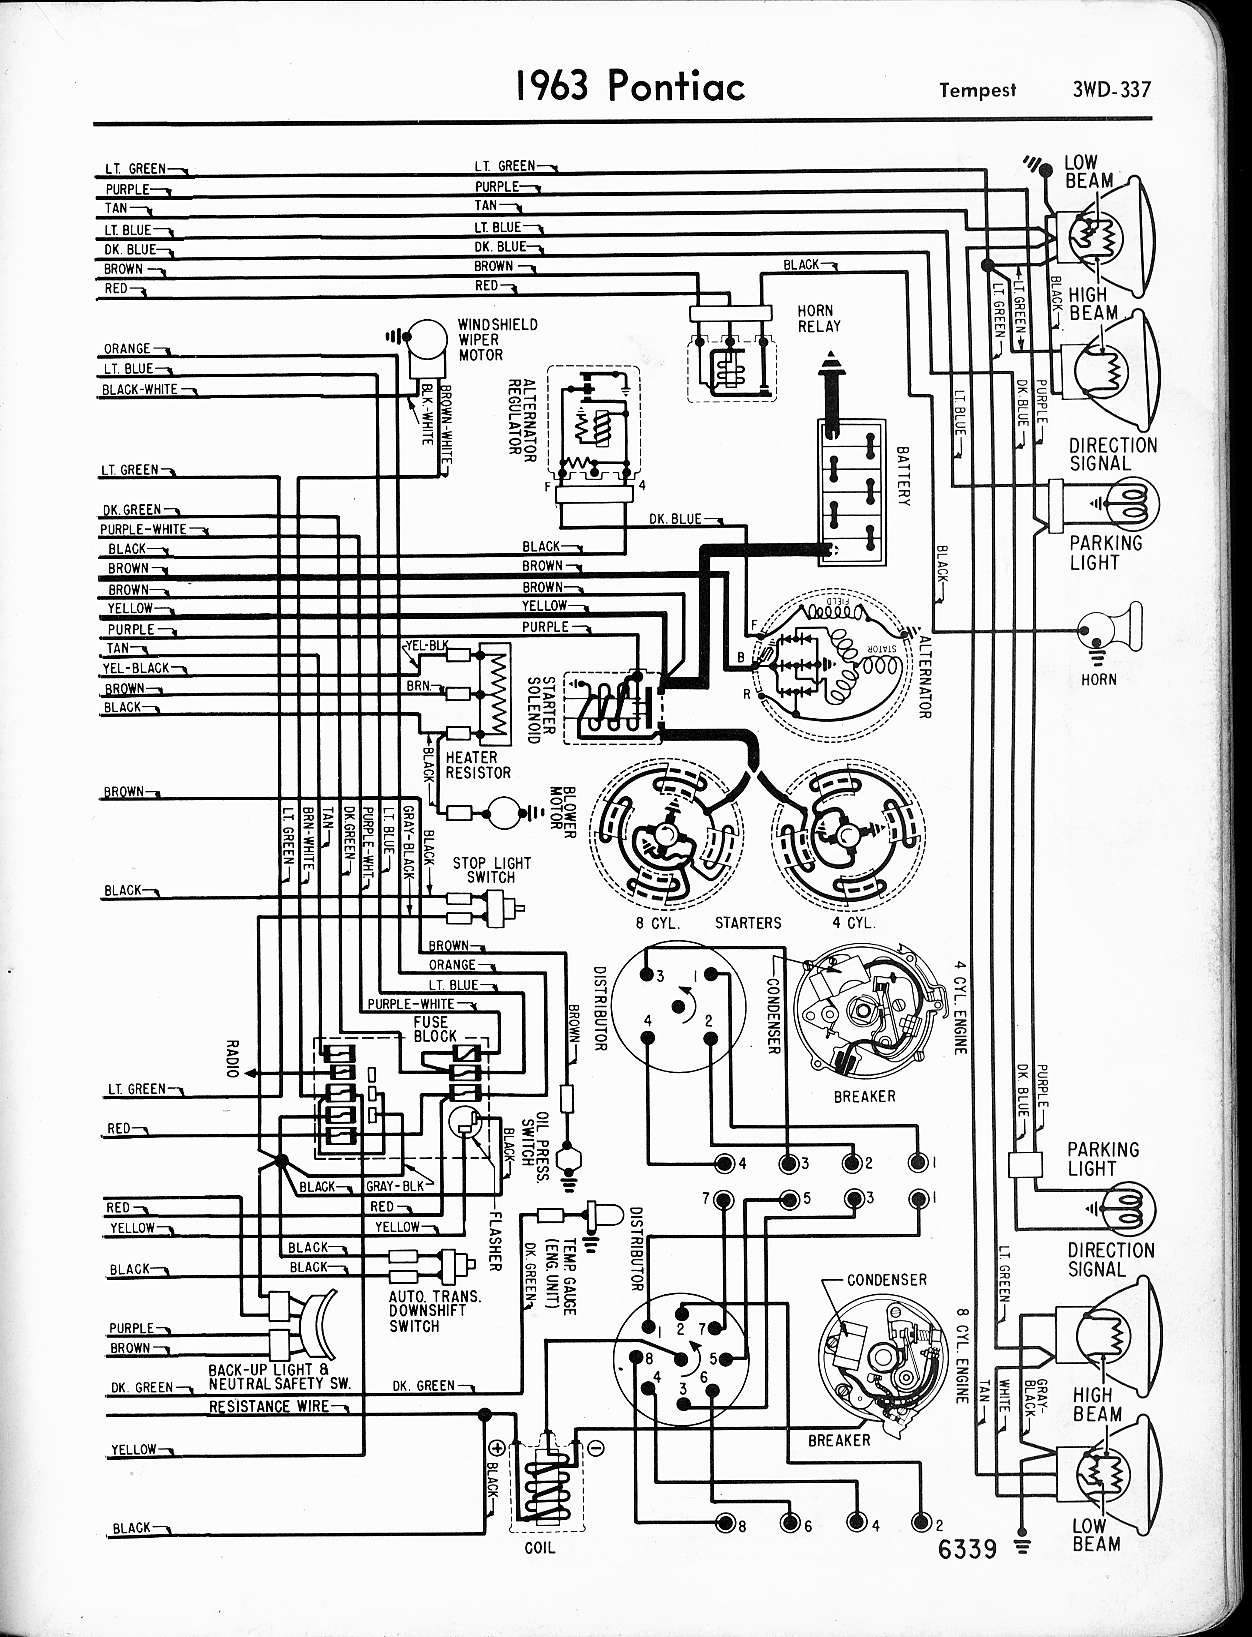 64 impala headlight wiring diagram 2001 chevy impala headlight wiring diagram electrical engineer drawing at getdrawings.com | free for ...